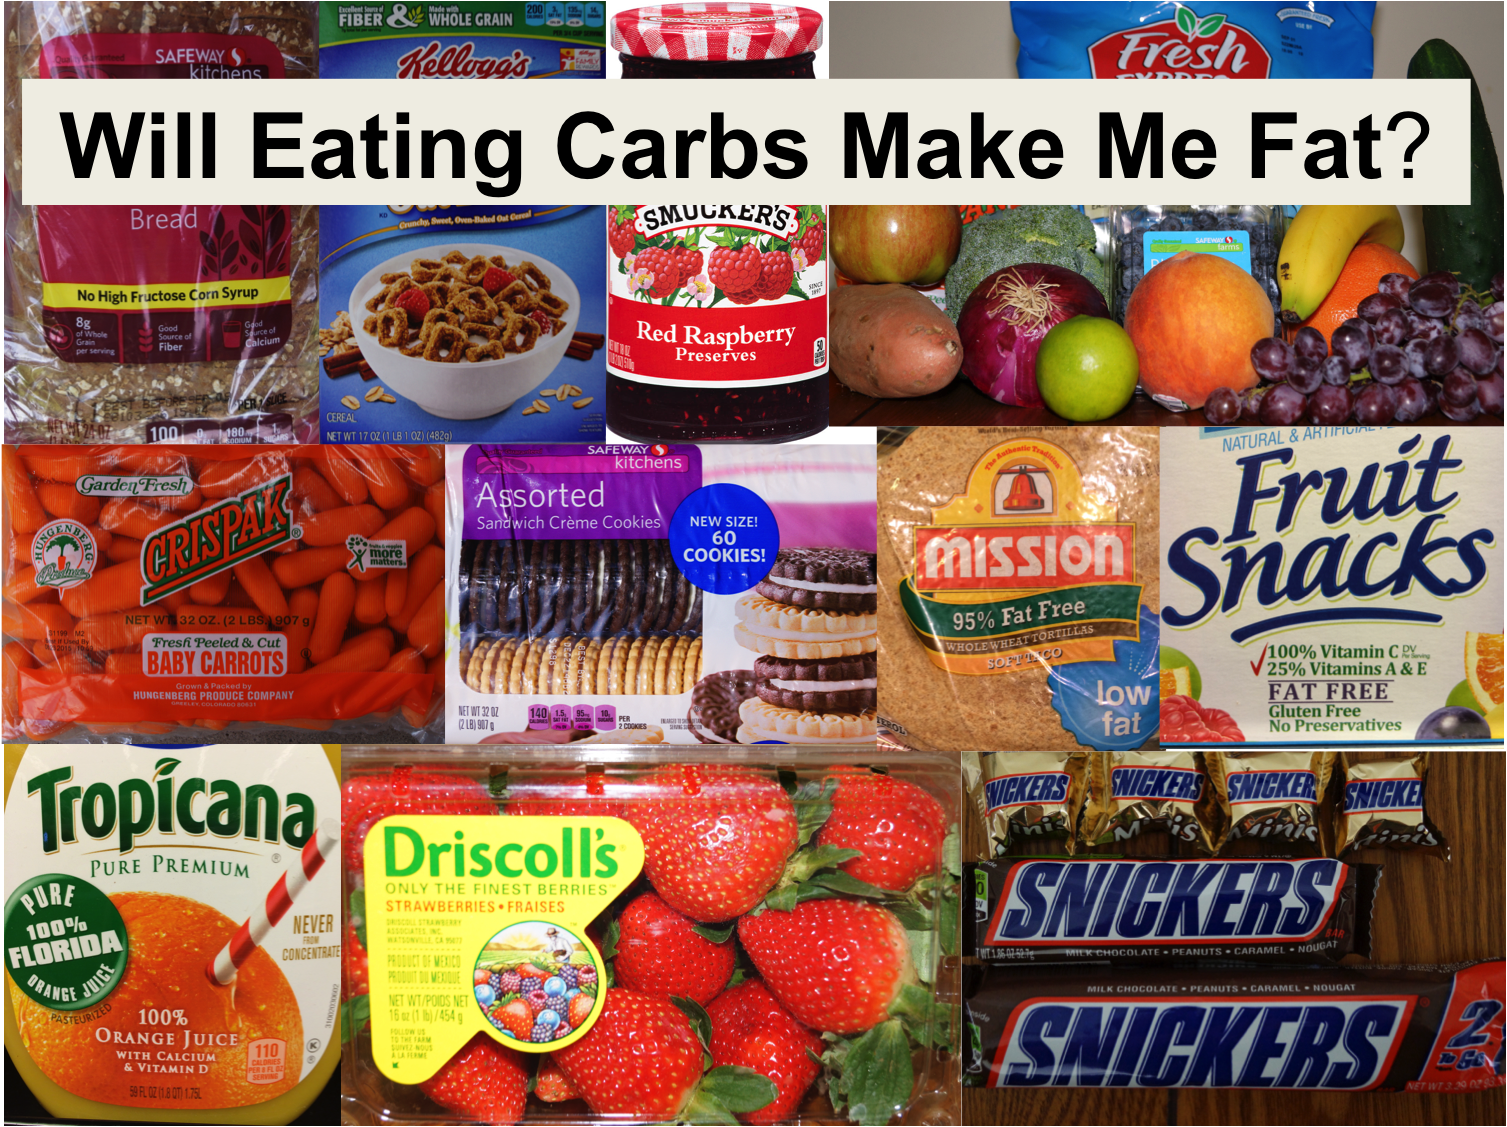 Will Eating Carbs Make You Fat?